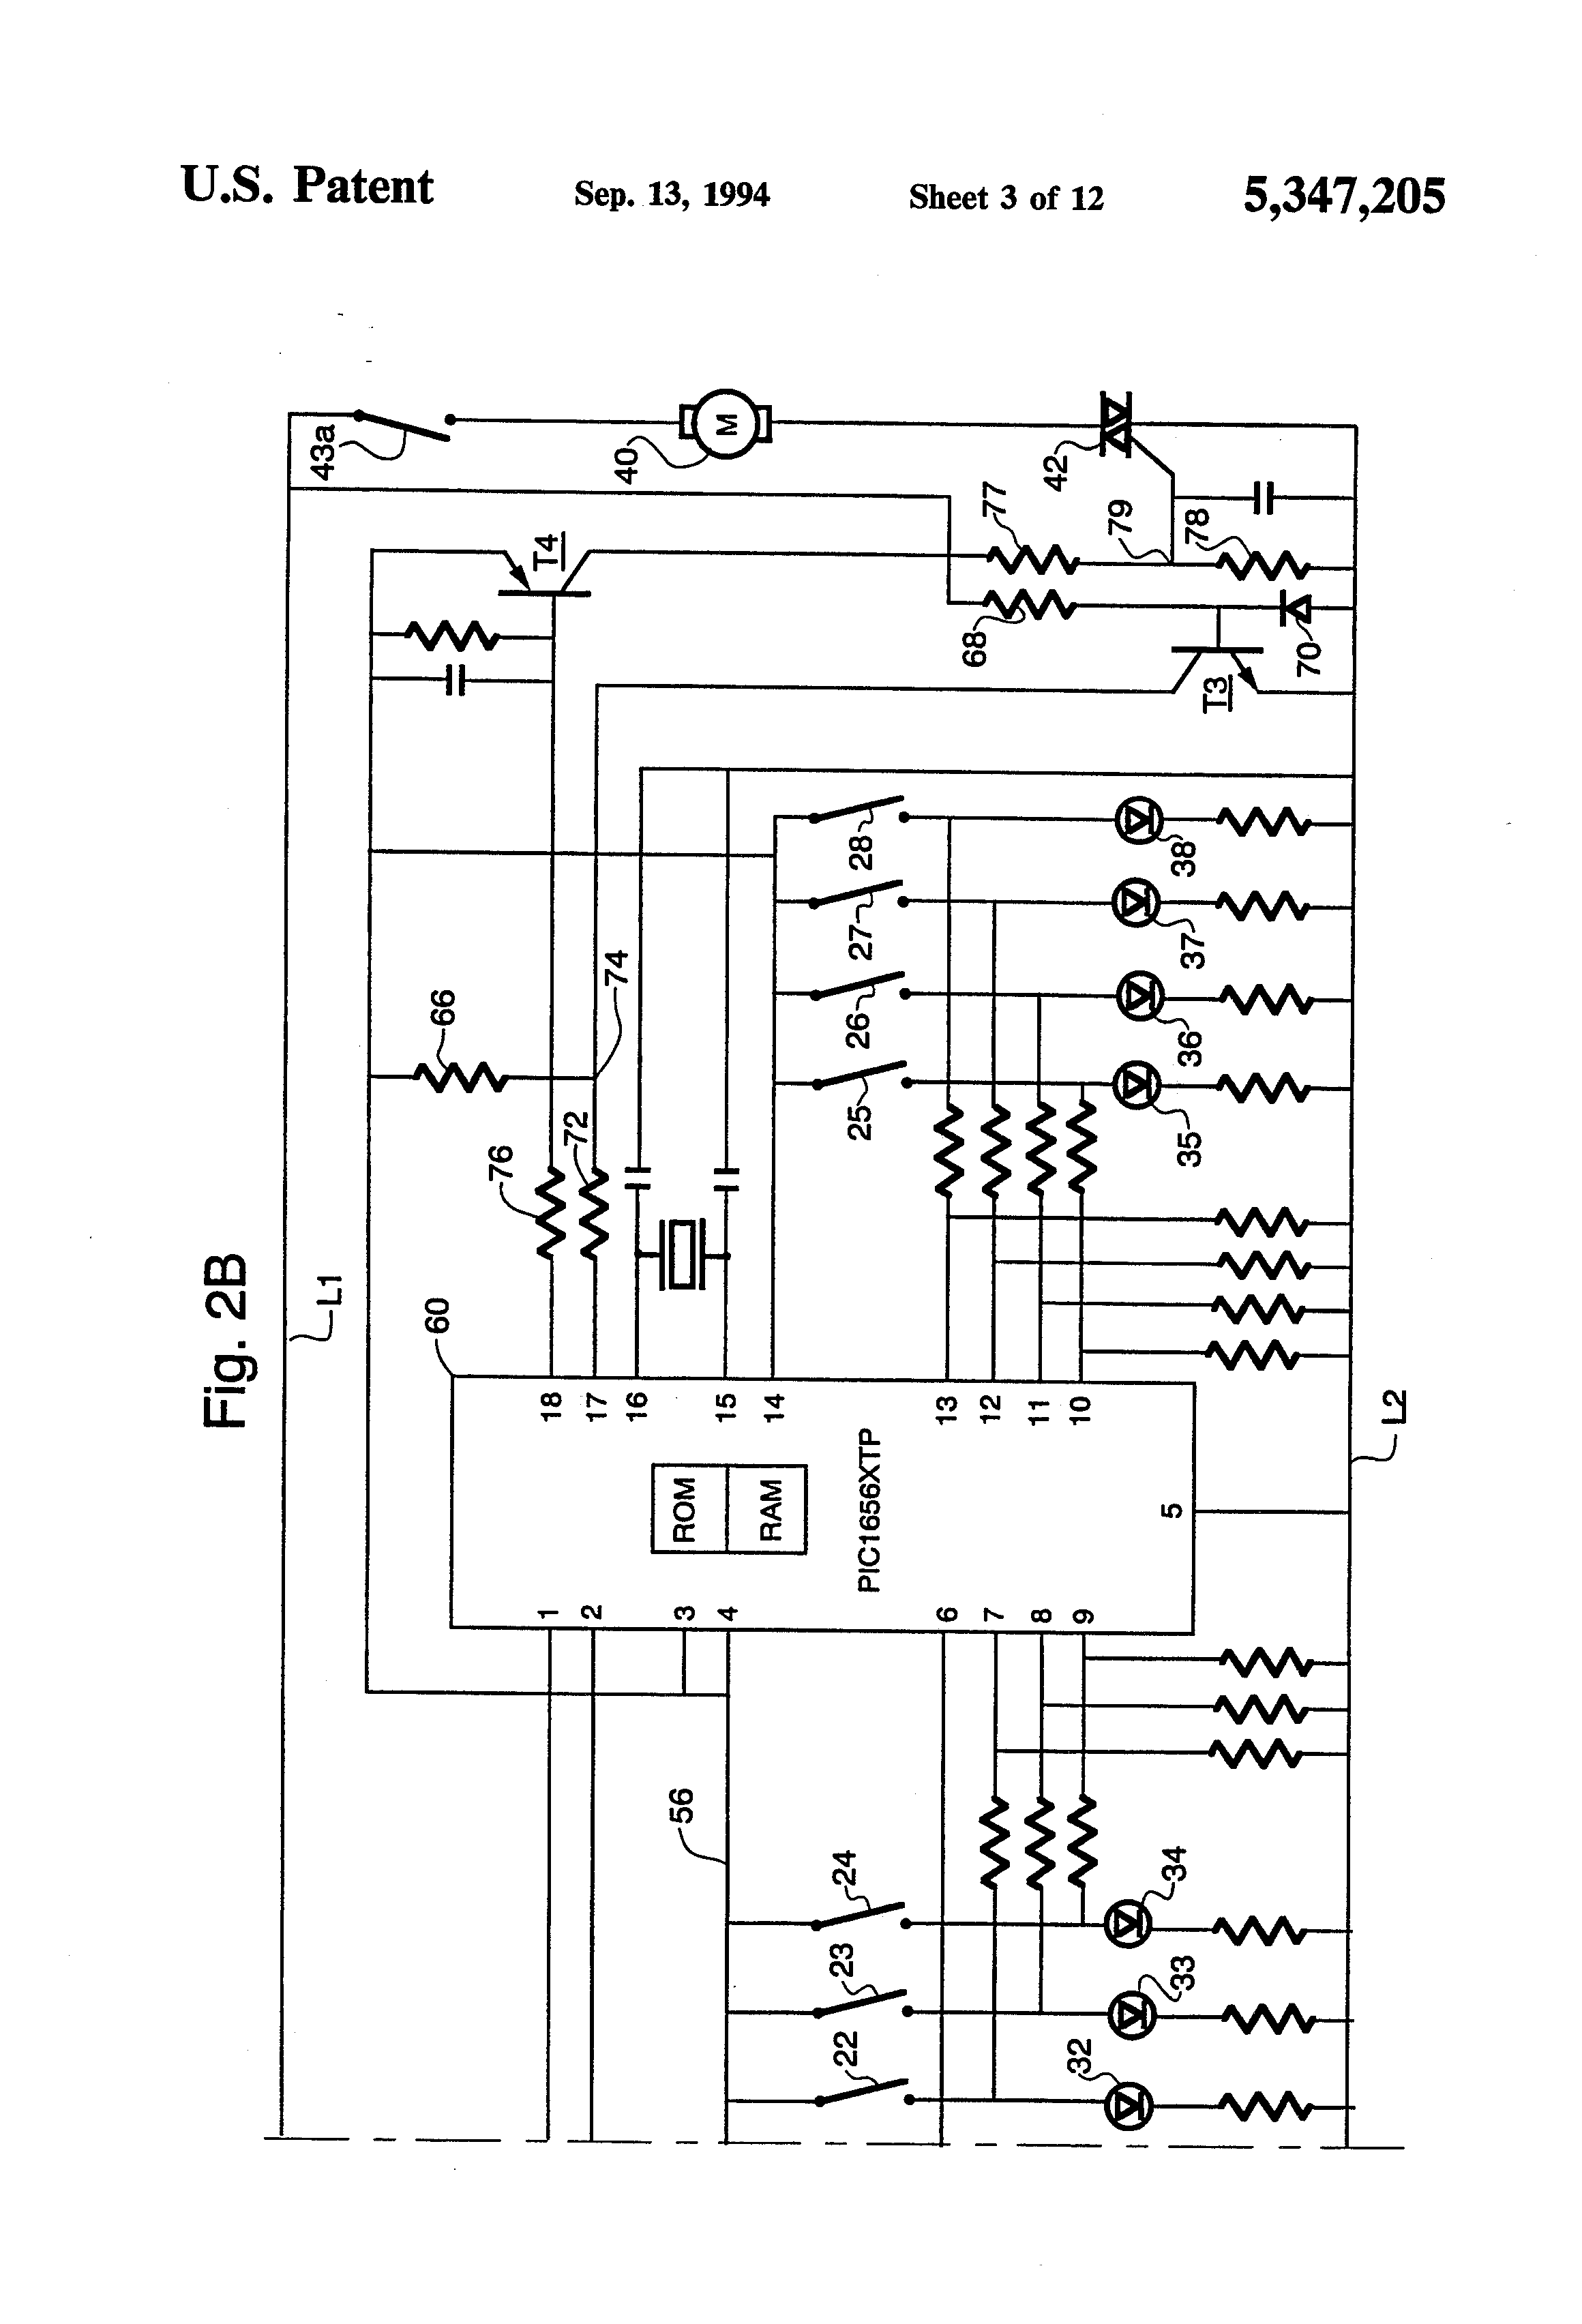 Patent US5347205 - Sd and mode control for a blender - Google ... on simple flow charts, relay diagrams, simple brochures, simple body, simple electrical system, communication diagrams, simple plumbing diagrams, simple alternator diagrams, simple sketches, air compressor piping layout diagrams, basic electrical schematic diagrams, simple gearbox, simple floor plans, simple cooling system, simple electrical schematics, simple control diagrams, simple transmission, simple index, simple block diagrams, simple assembly,